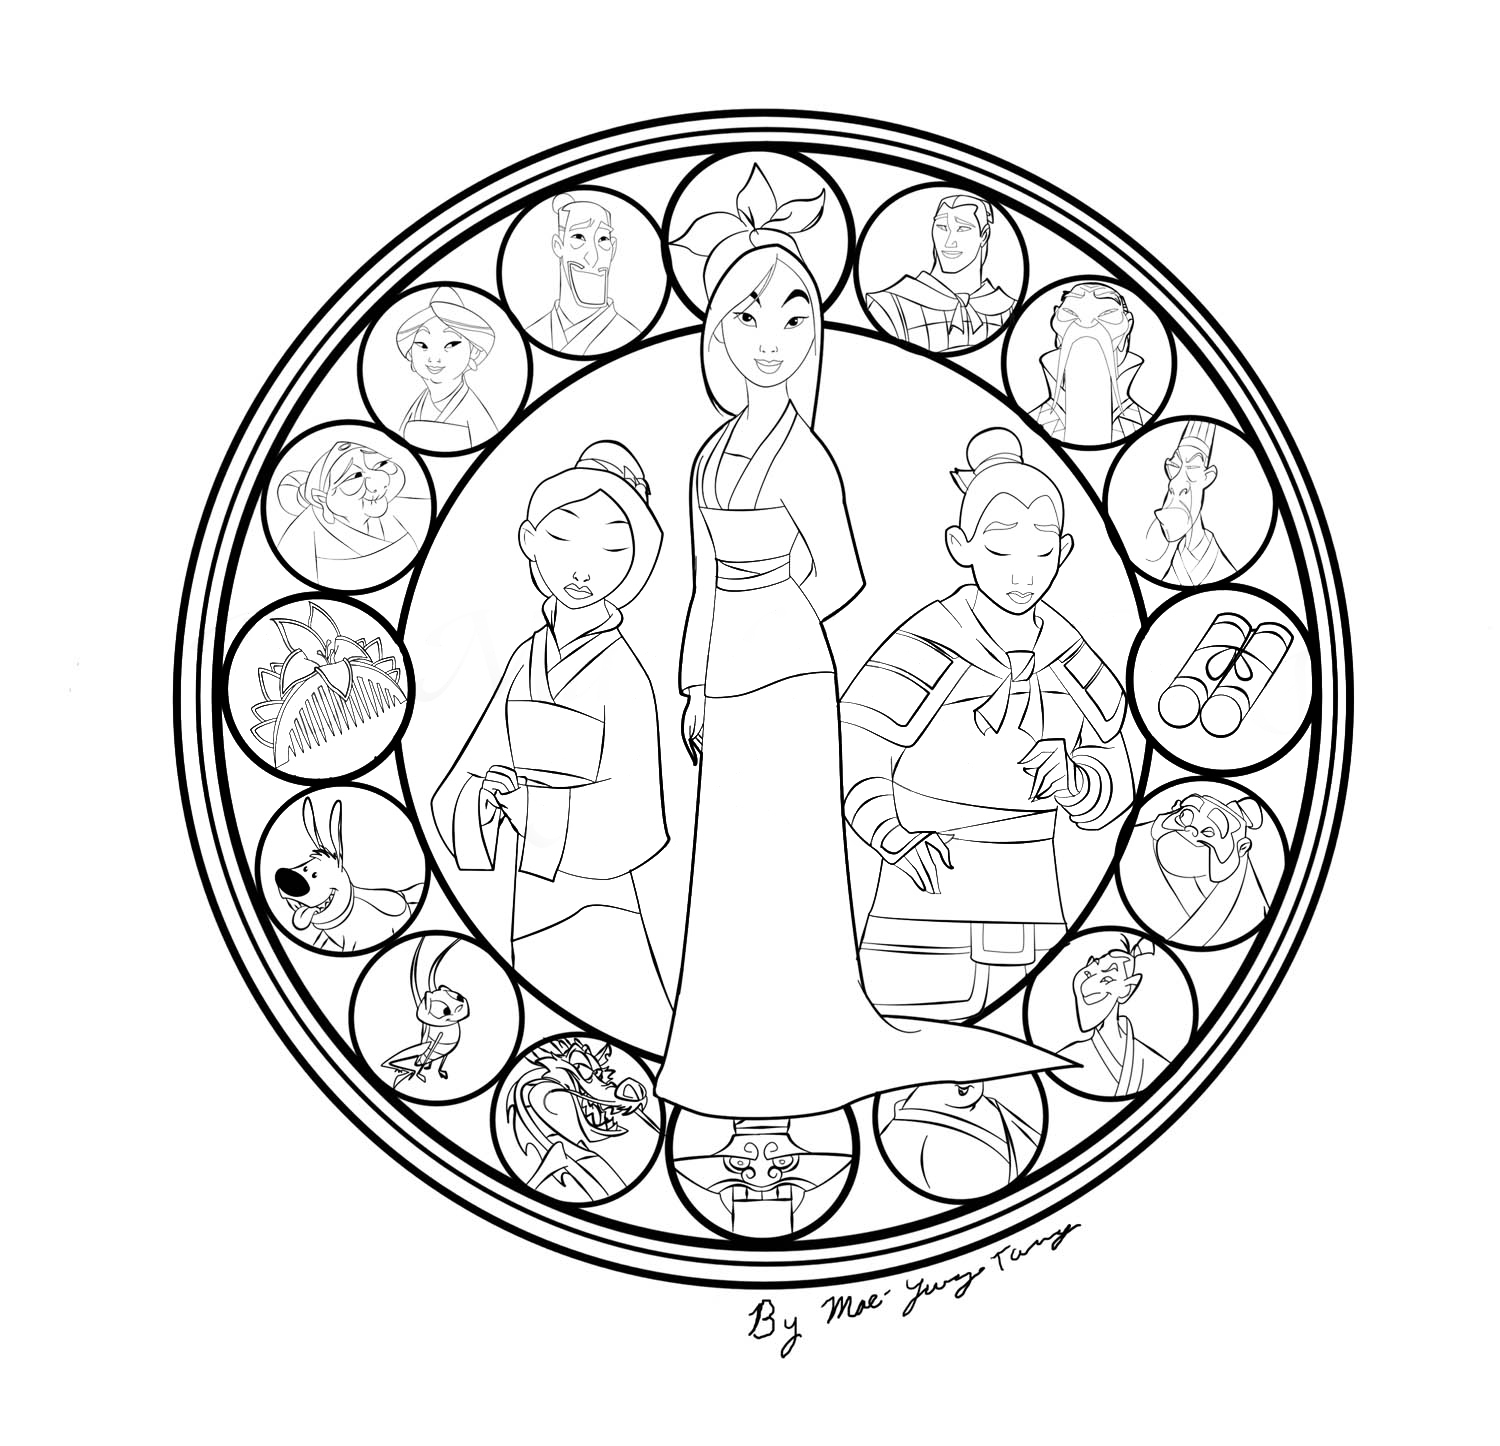 stained glass coloring page stained glass ichthus sketch coloring page glass page stained coloring